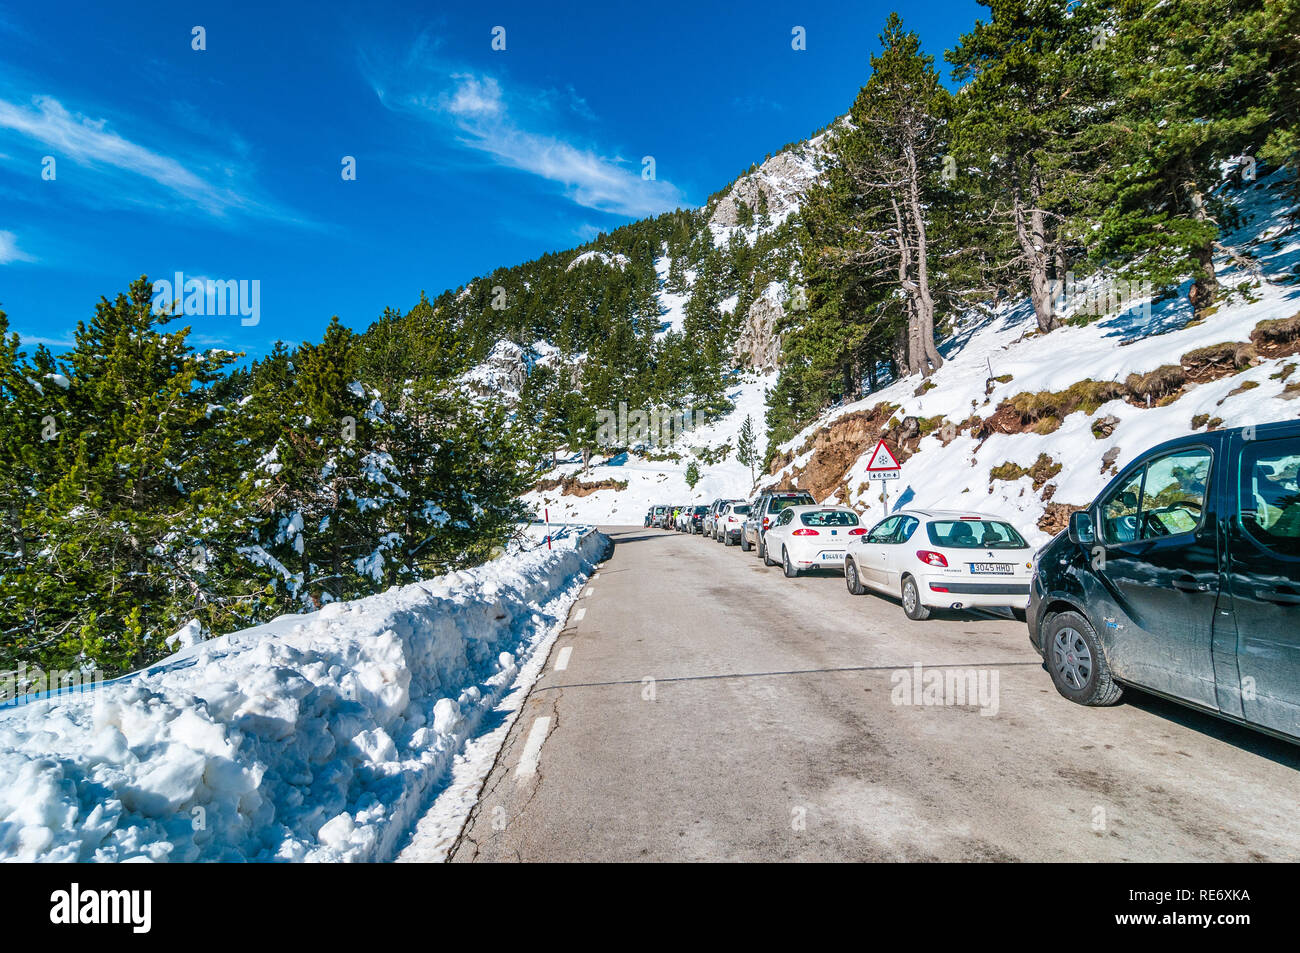 road to Coll de Pal on weekend, BV-4024, Catalonia, Spain - Stock Image